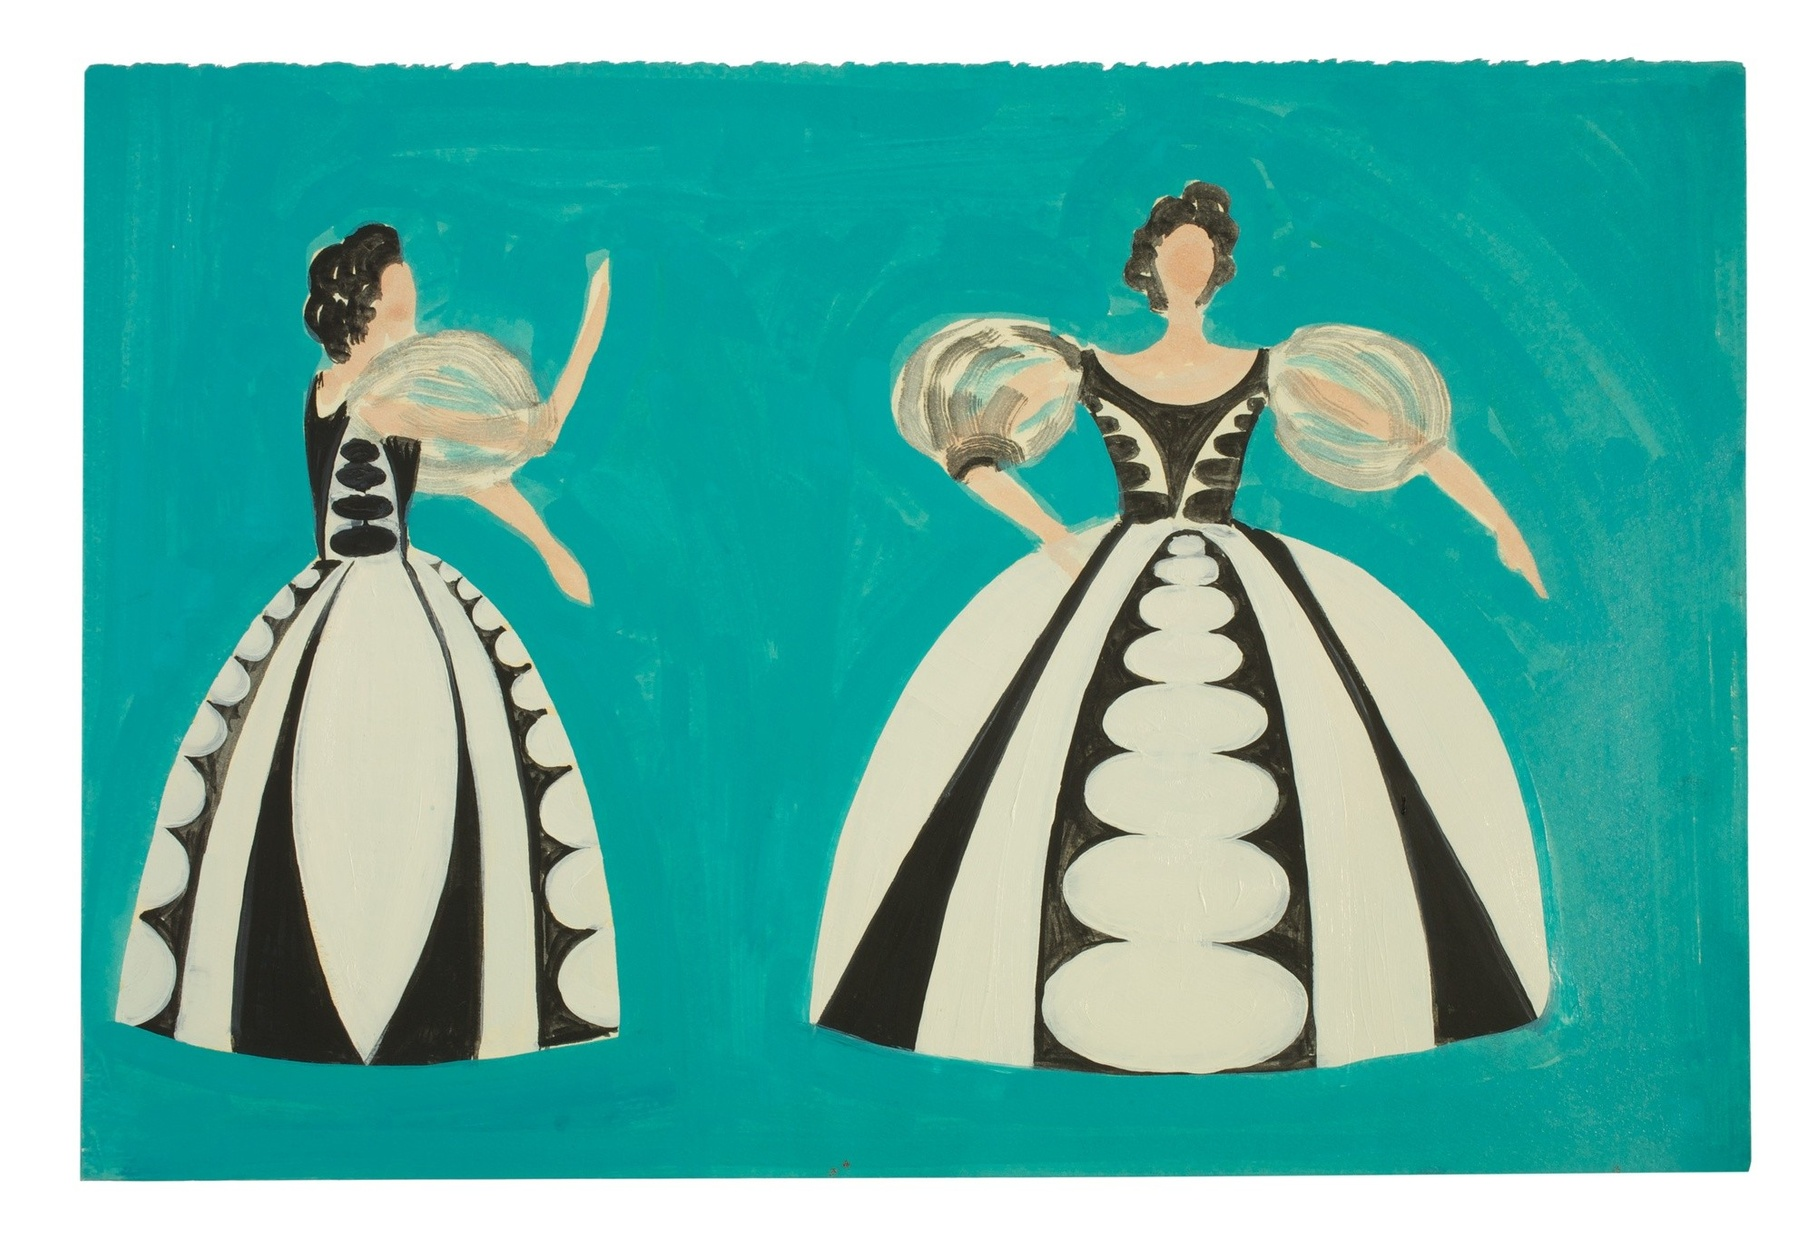 A drawing of a woman in profile wearing a black and white ballgown next to the same woman facing forward on a turquoise background.